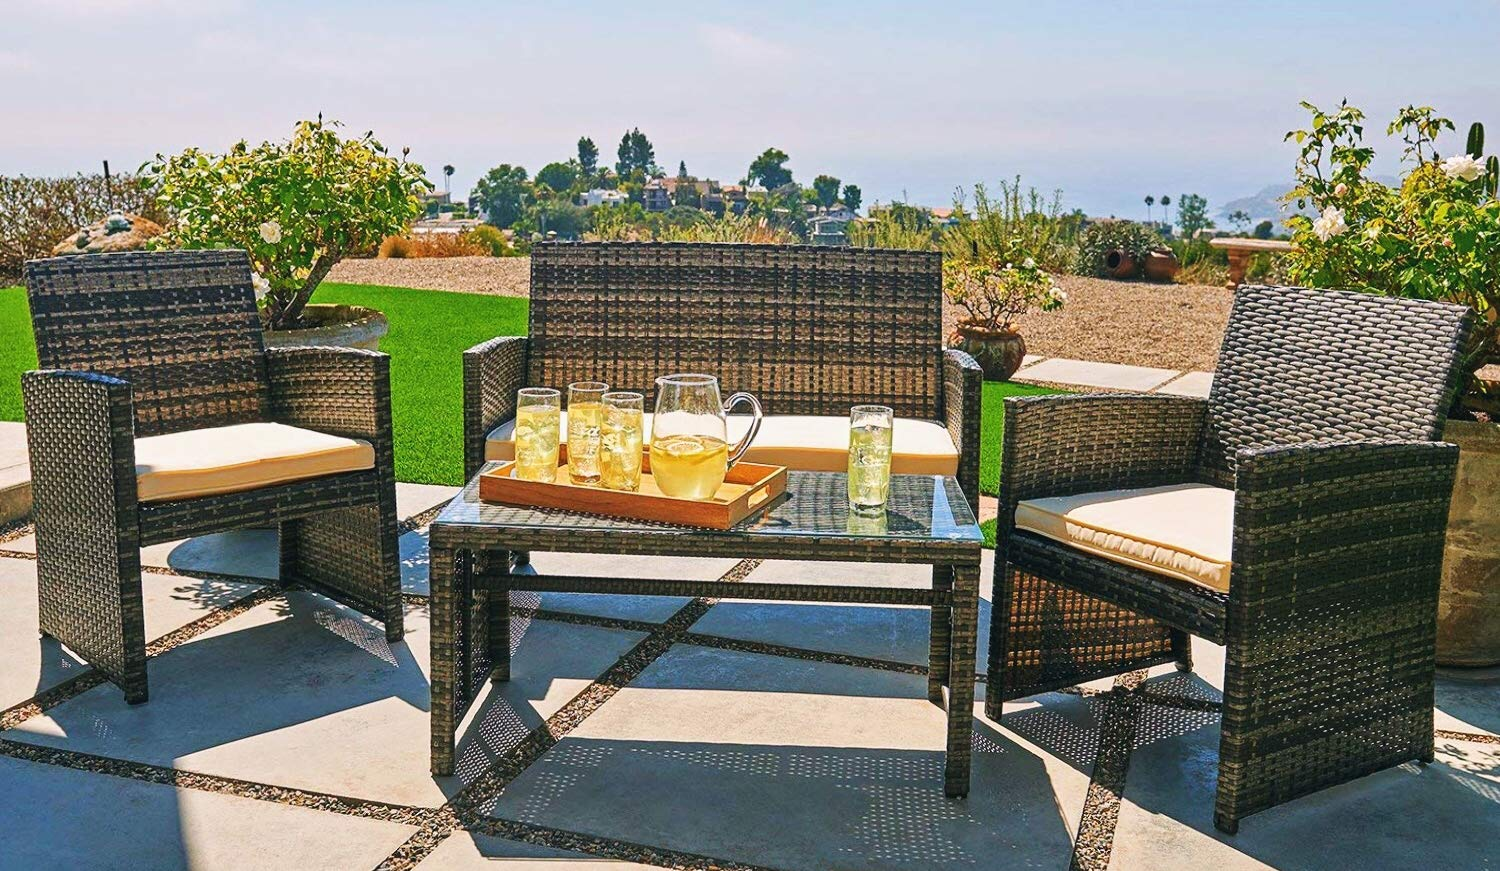 OUTROAD Outdoor Furniture 4 Piece Grey Wicker Patio Sofa Set - All Weather Cushioned Wicker Love Seat with Glass Top Table and Two Armchairs - Premium Comfort - This patio set comes with 1 loveseat, 2 chairs and tempered glass top table. Great for a small group get together, relax and enjoy a moment of peace. Build a cozy corner for a high tea or a magazine. Sturdy and durable - Powder-coated steel with hand woven weather-resistent PE ratten wicker for the best stability and extended life cycle Quick Assembly - All hardware and tools are included for a quick and pleasant assembly. Easy project for a valuable family exercise. - patio-furniture, patio, conversation-sets - 81hBwF21ONL -